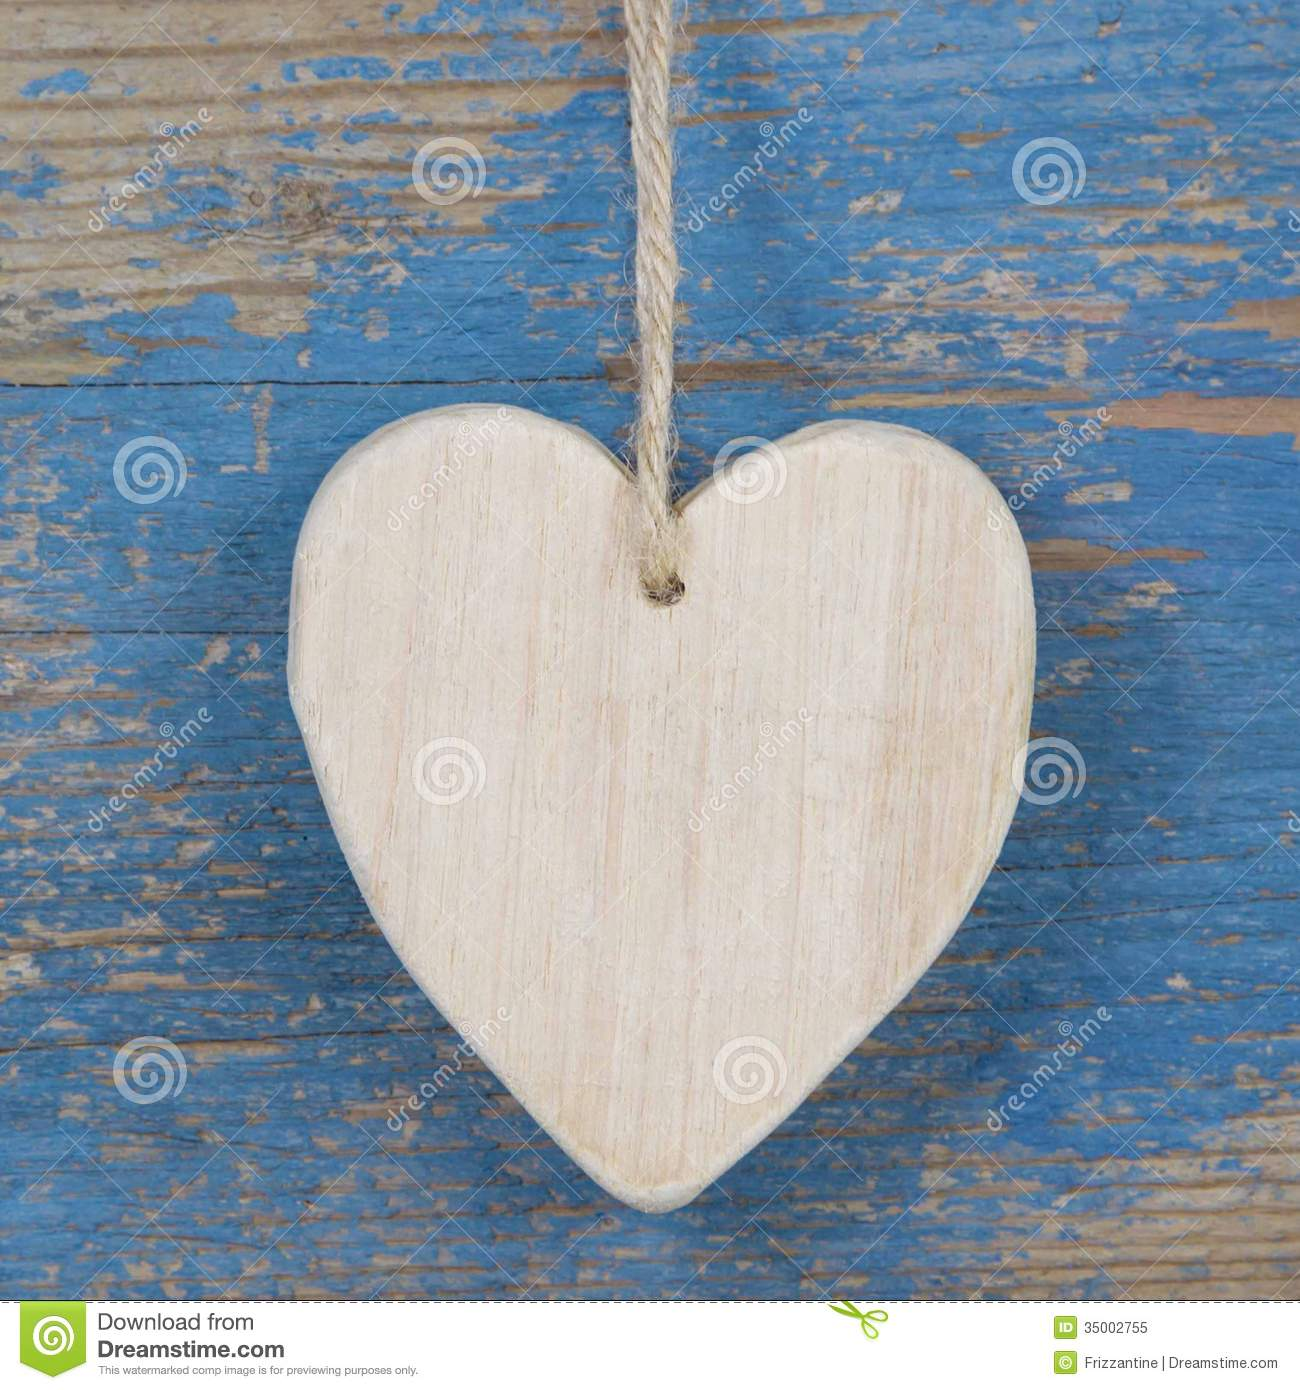 Wooden Heart Shape On Blue Wooden Surface For Valentine